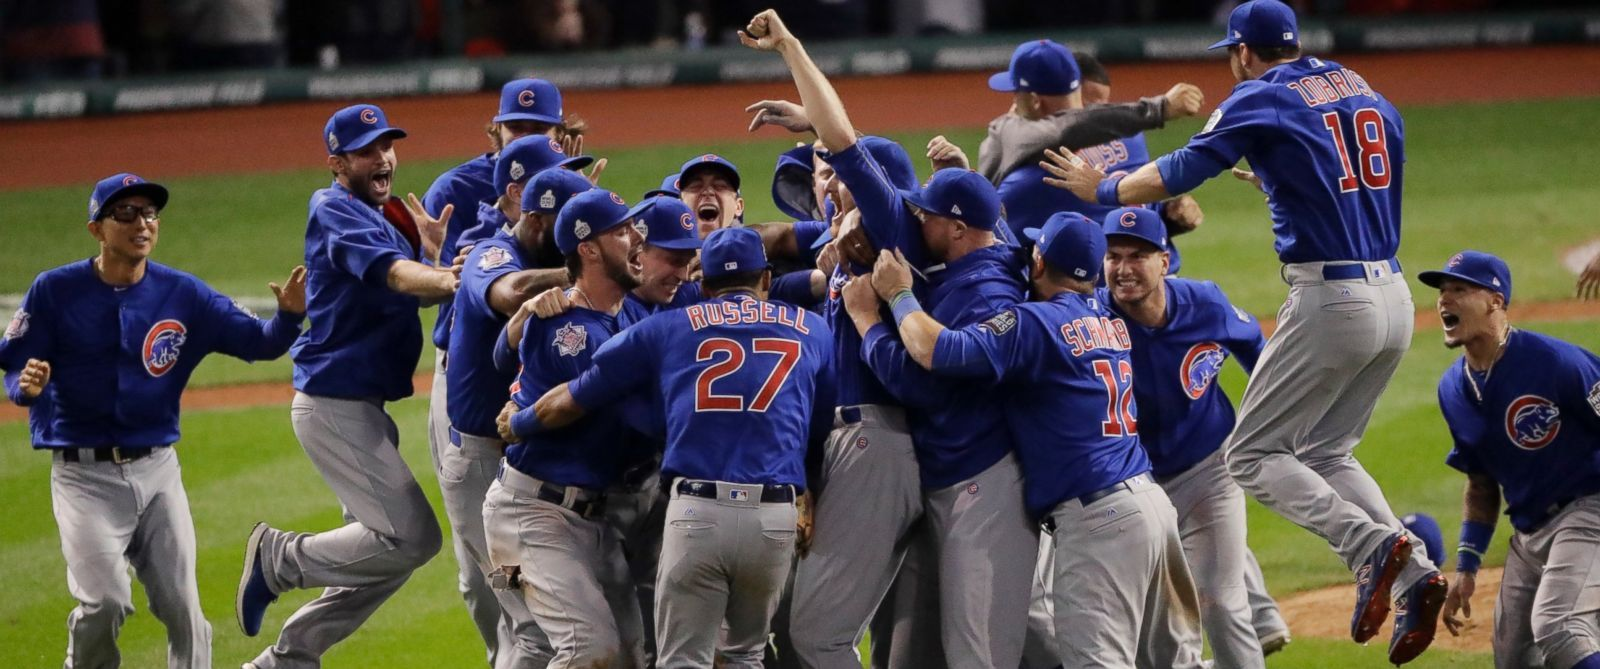 I Am So Happy About This The Cubs Won The World Series In Game 7 What A Wild Game It Was Cubs World Series Baseball World Series Chicago Cubs World Series